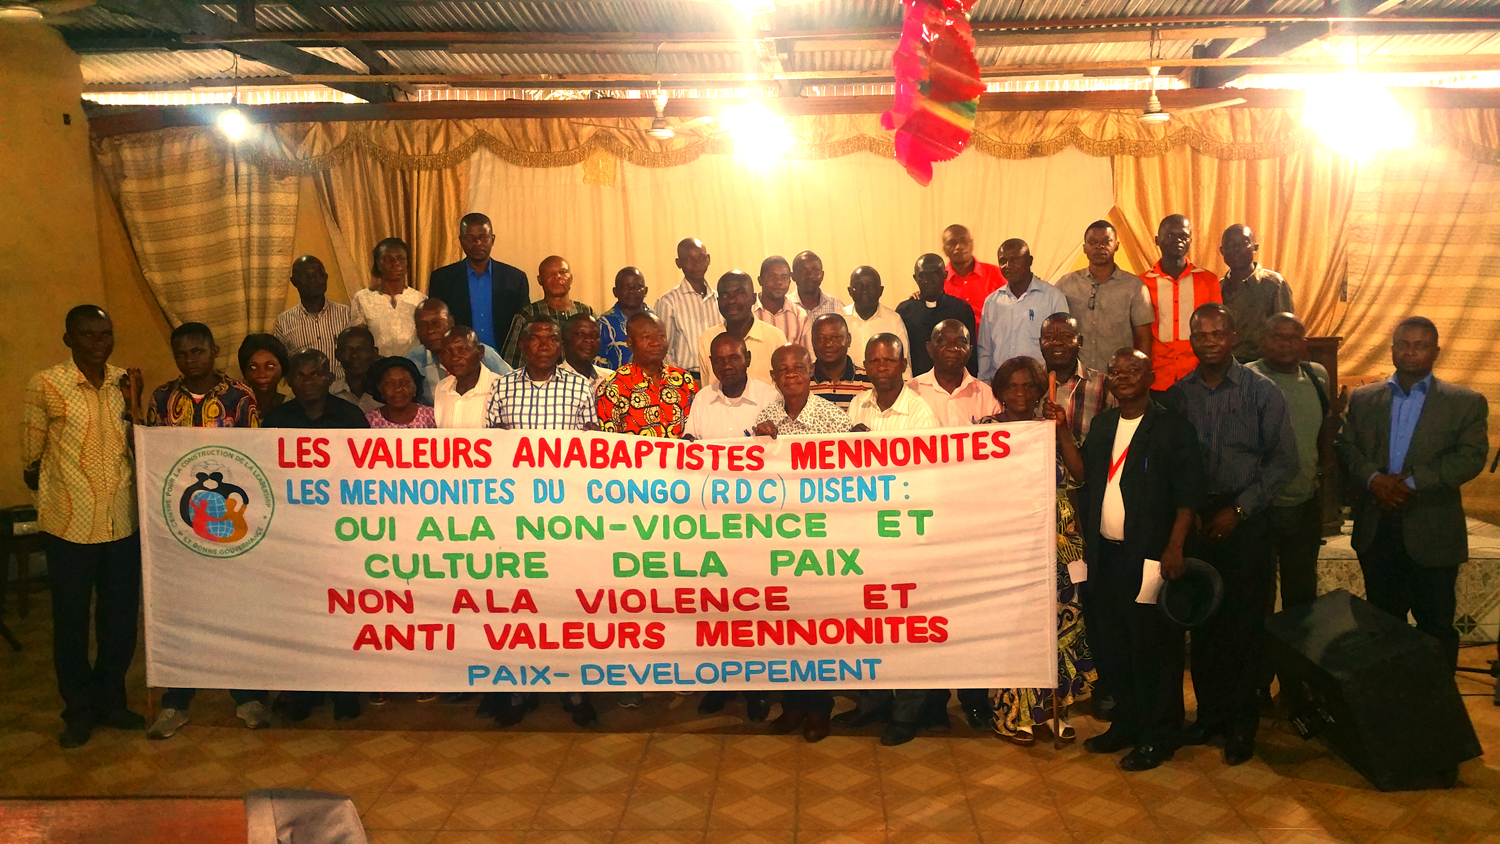 Participants discuss ideas and experiences during a workshop on Mennonite values and nonviolence in DR Congo.